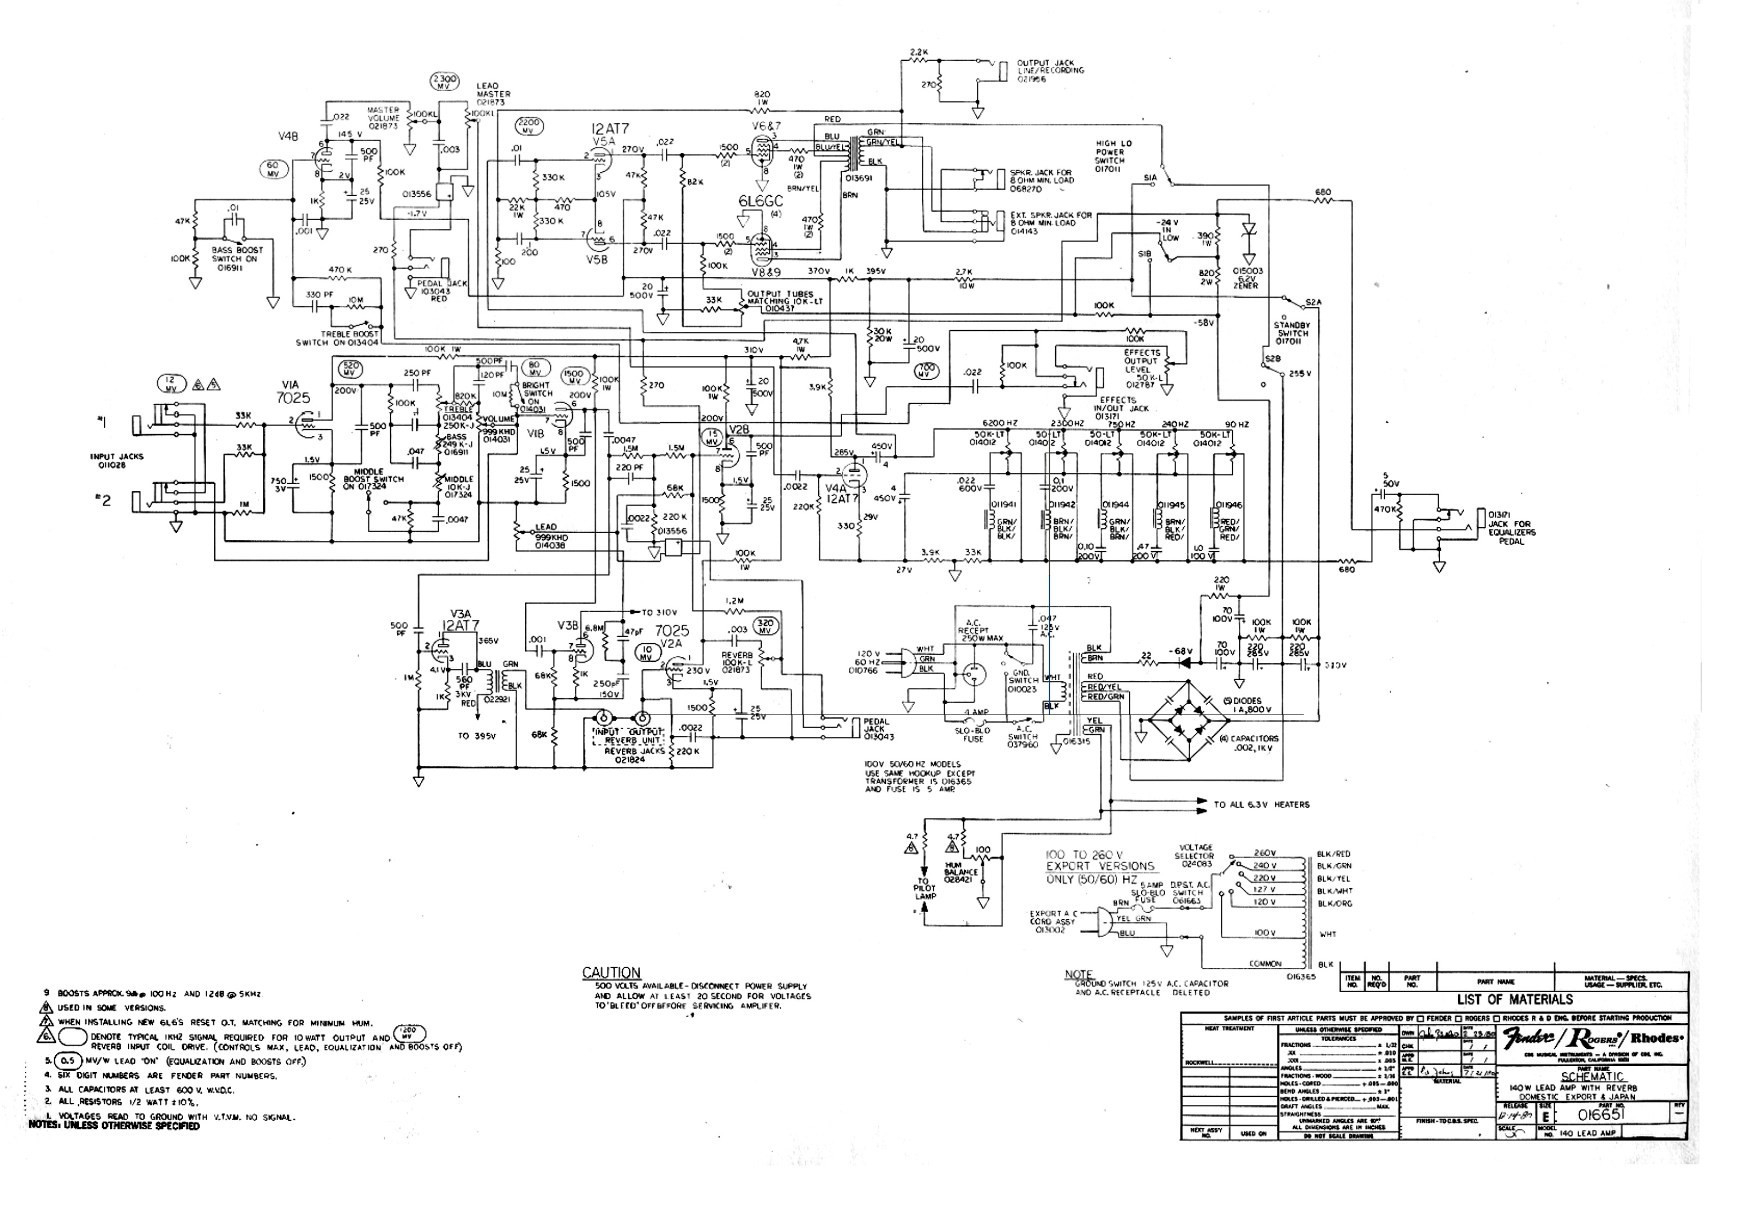 Federal Signal Pa300 Wiring | Wiring Diagram on